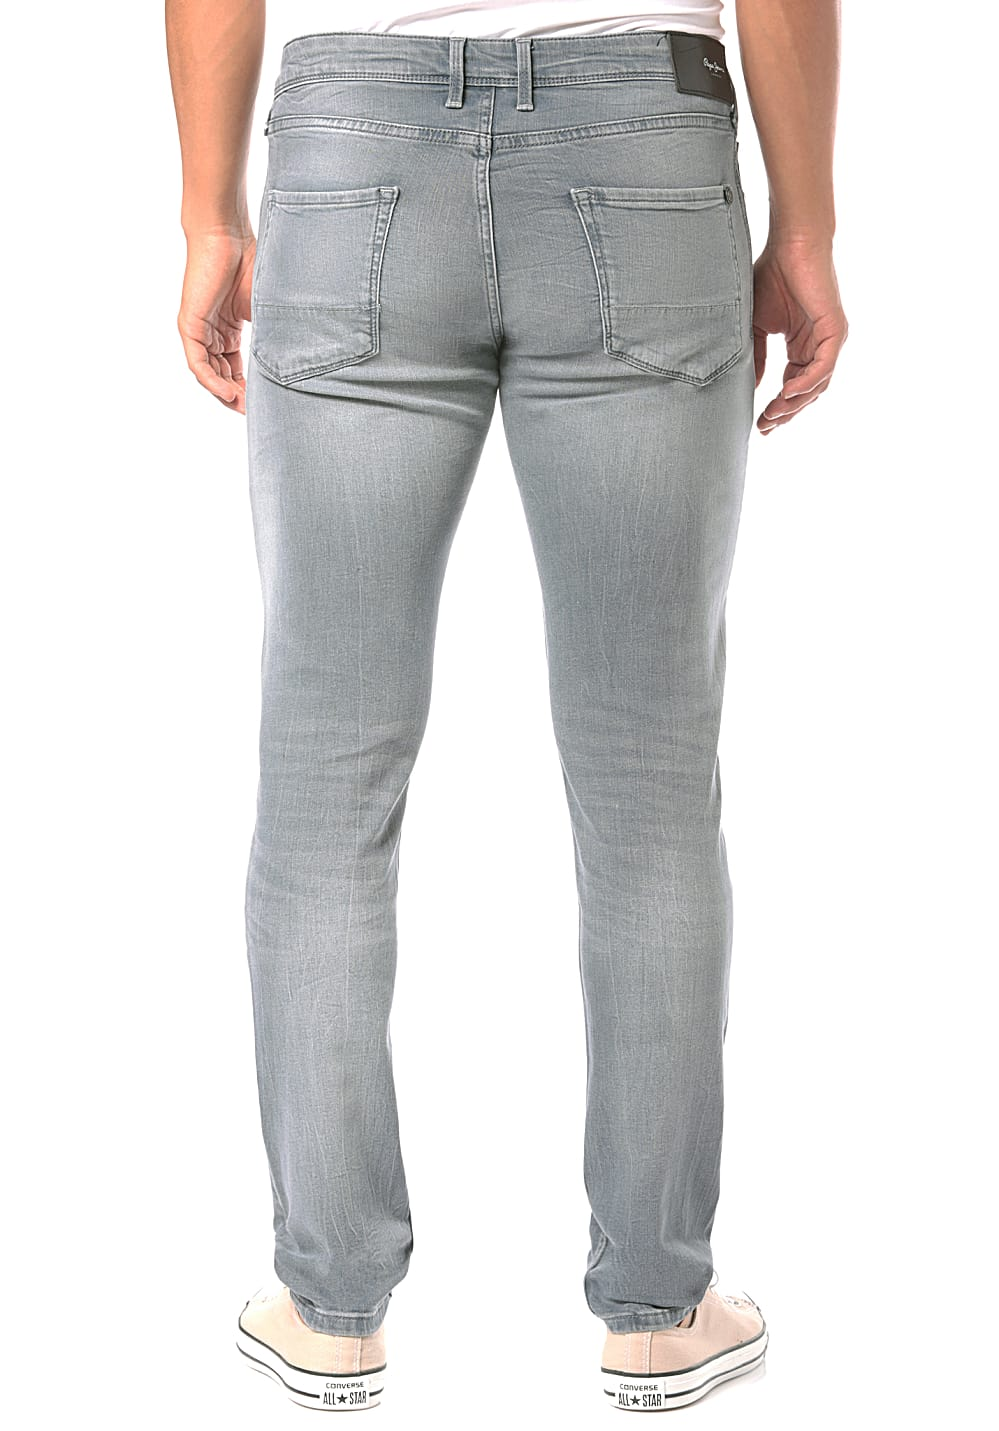 09dafda0a8a3a PEPE JEANS Finsbury - Denim Jeans for Men - Grey - Planet Sports